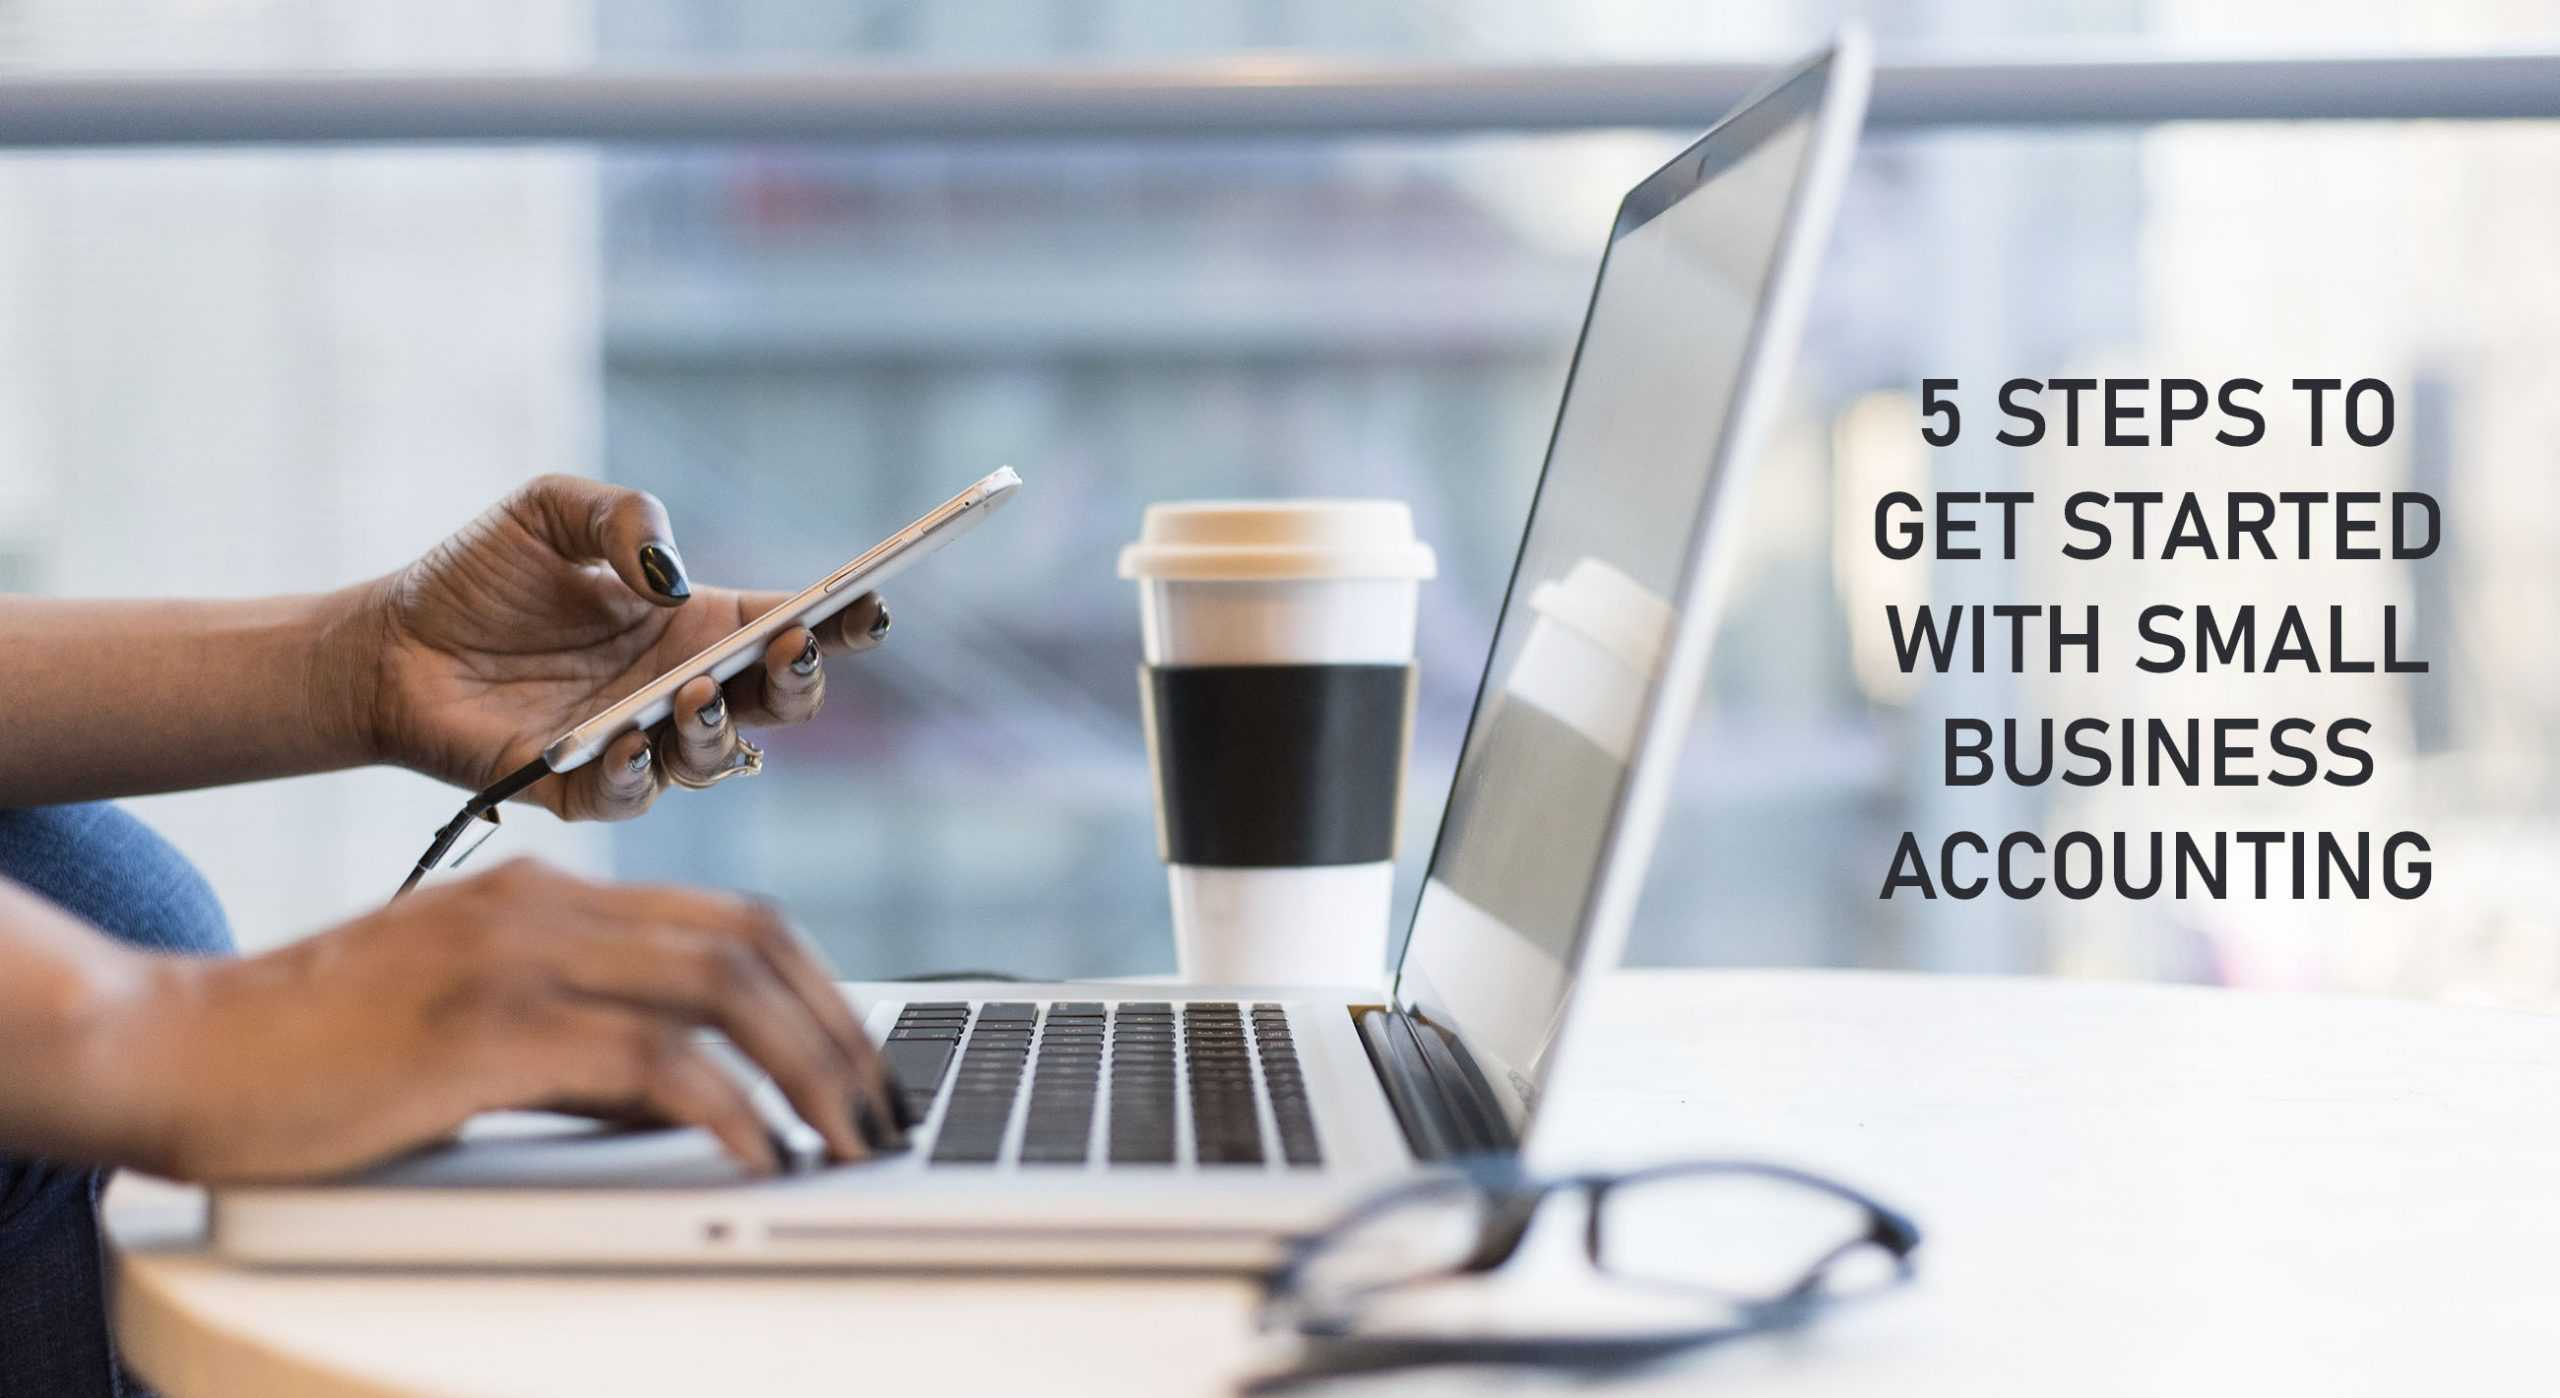 5 steps to get started with small business accounting